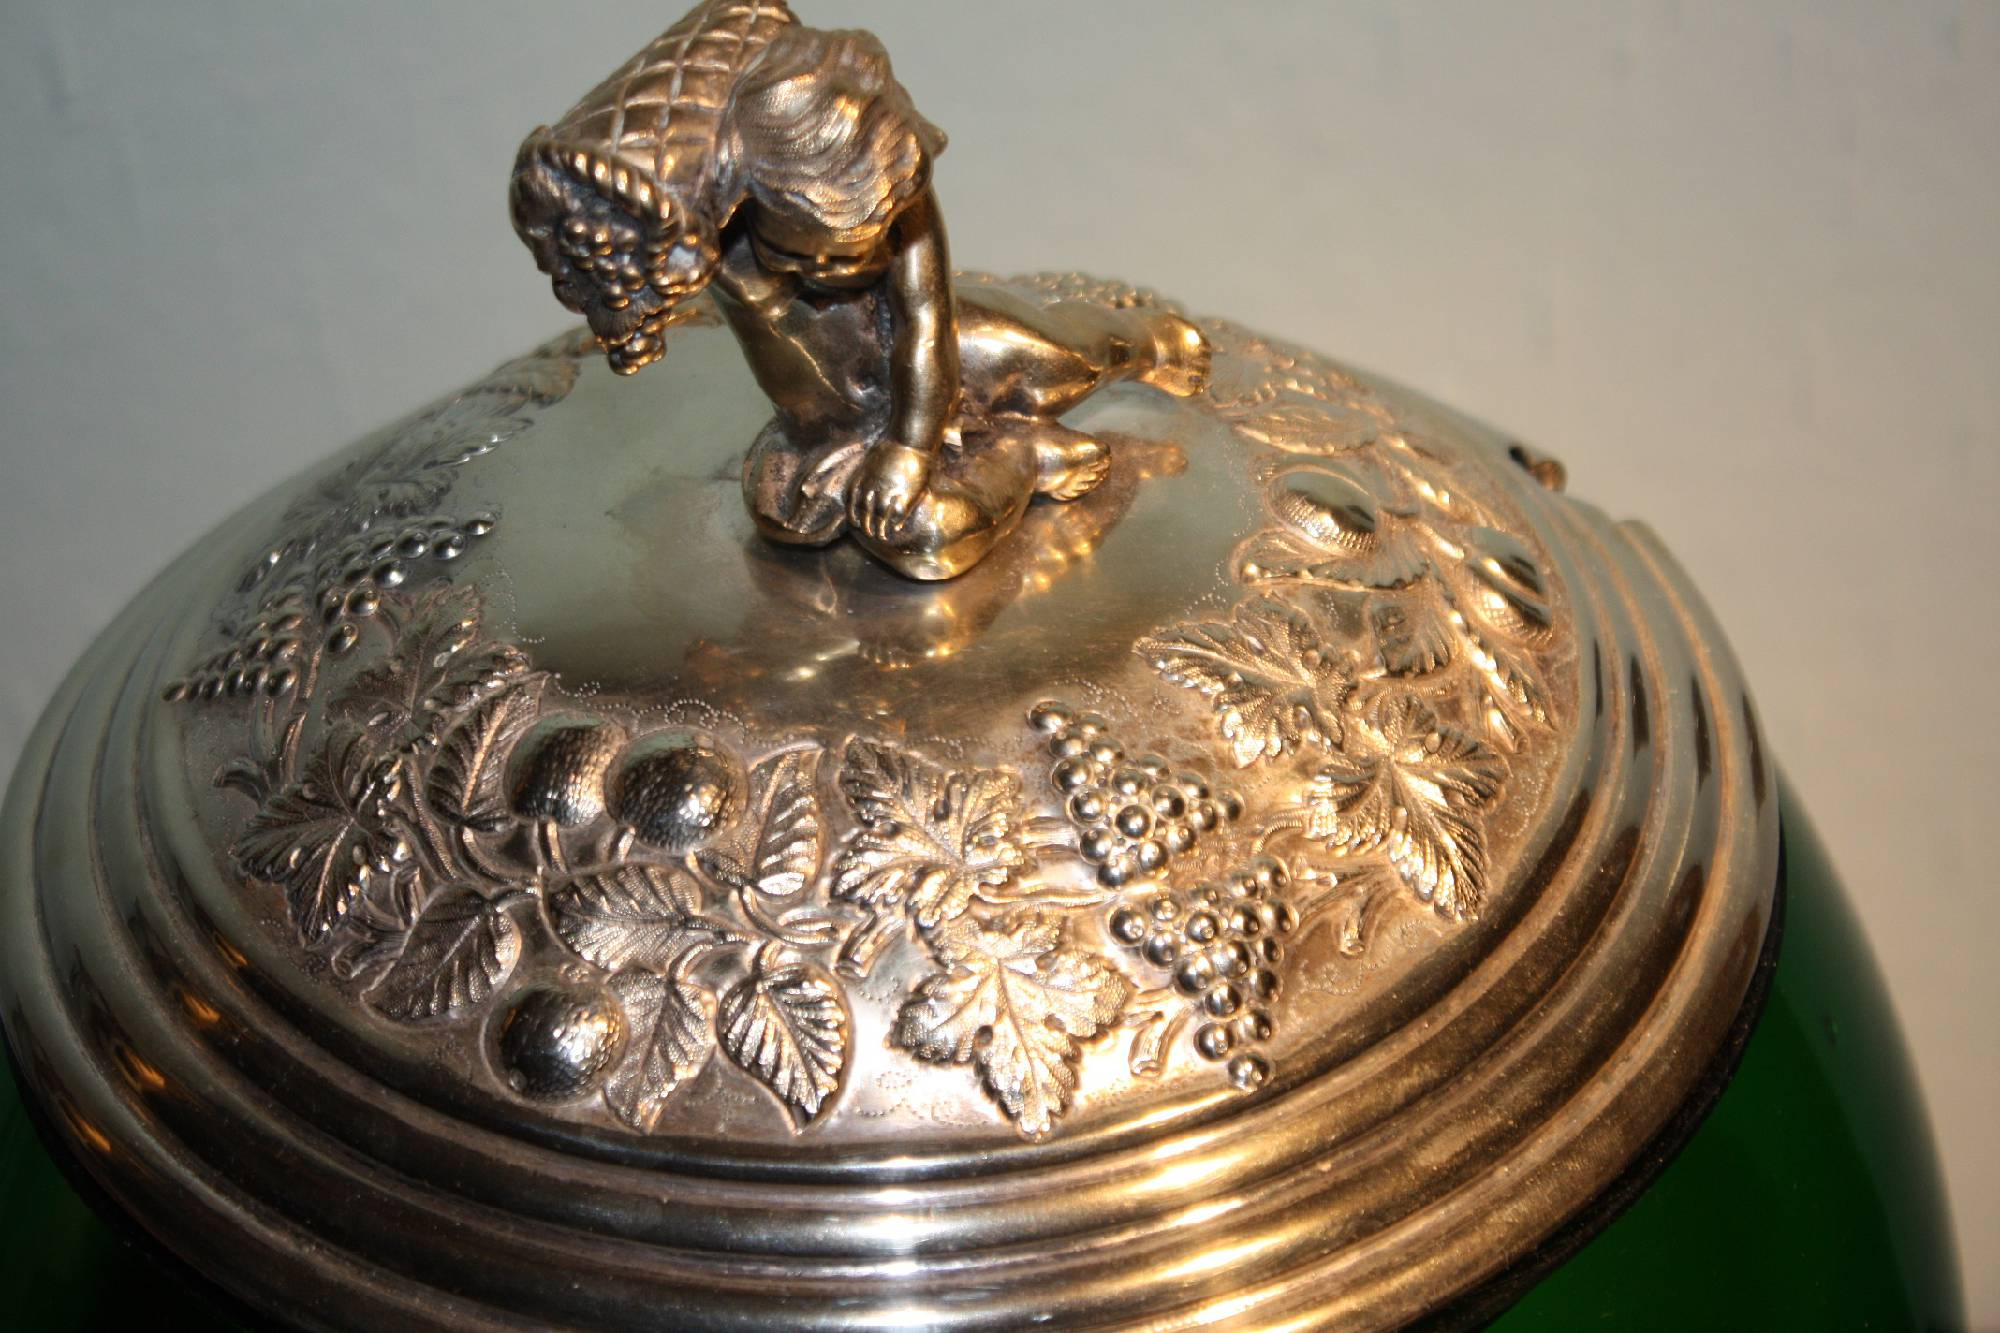 Large antique Mid-19th century 925 silver foot and lid, green glass bowl, bowle pot with engravings